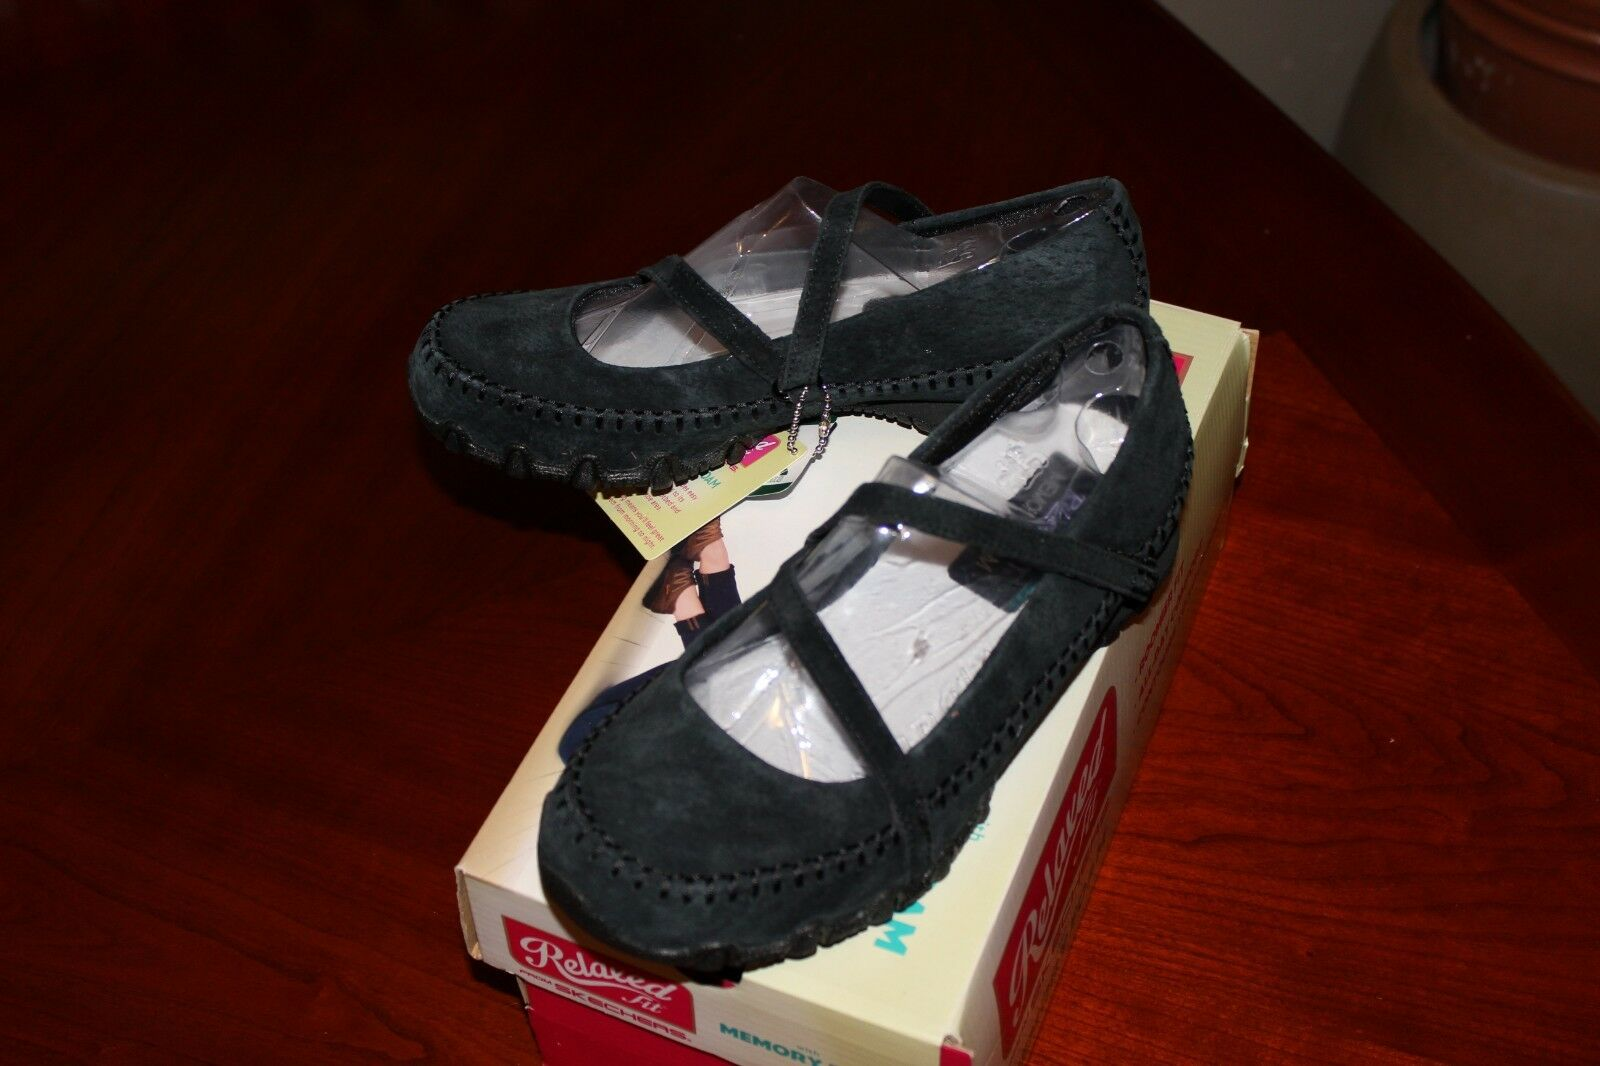 SKECHERS 49012 Womens Bikers Strollin sneakers - size 5.5 – NIB